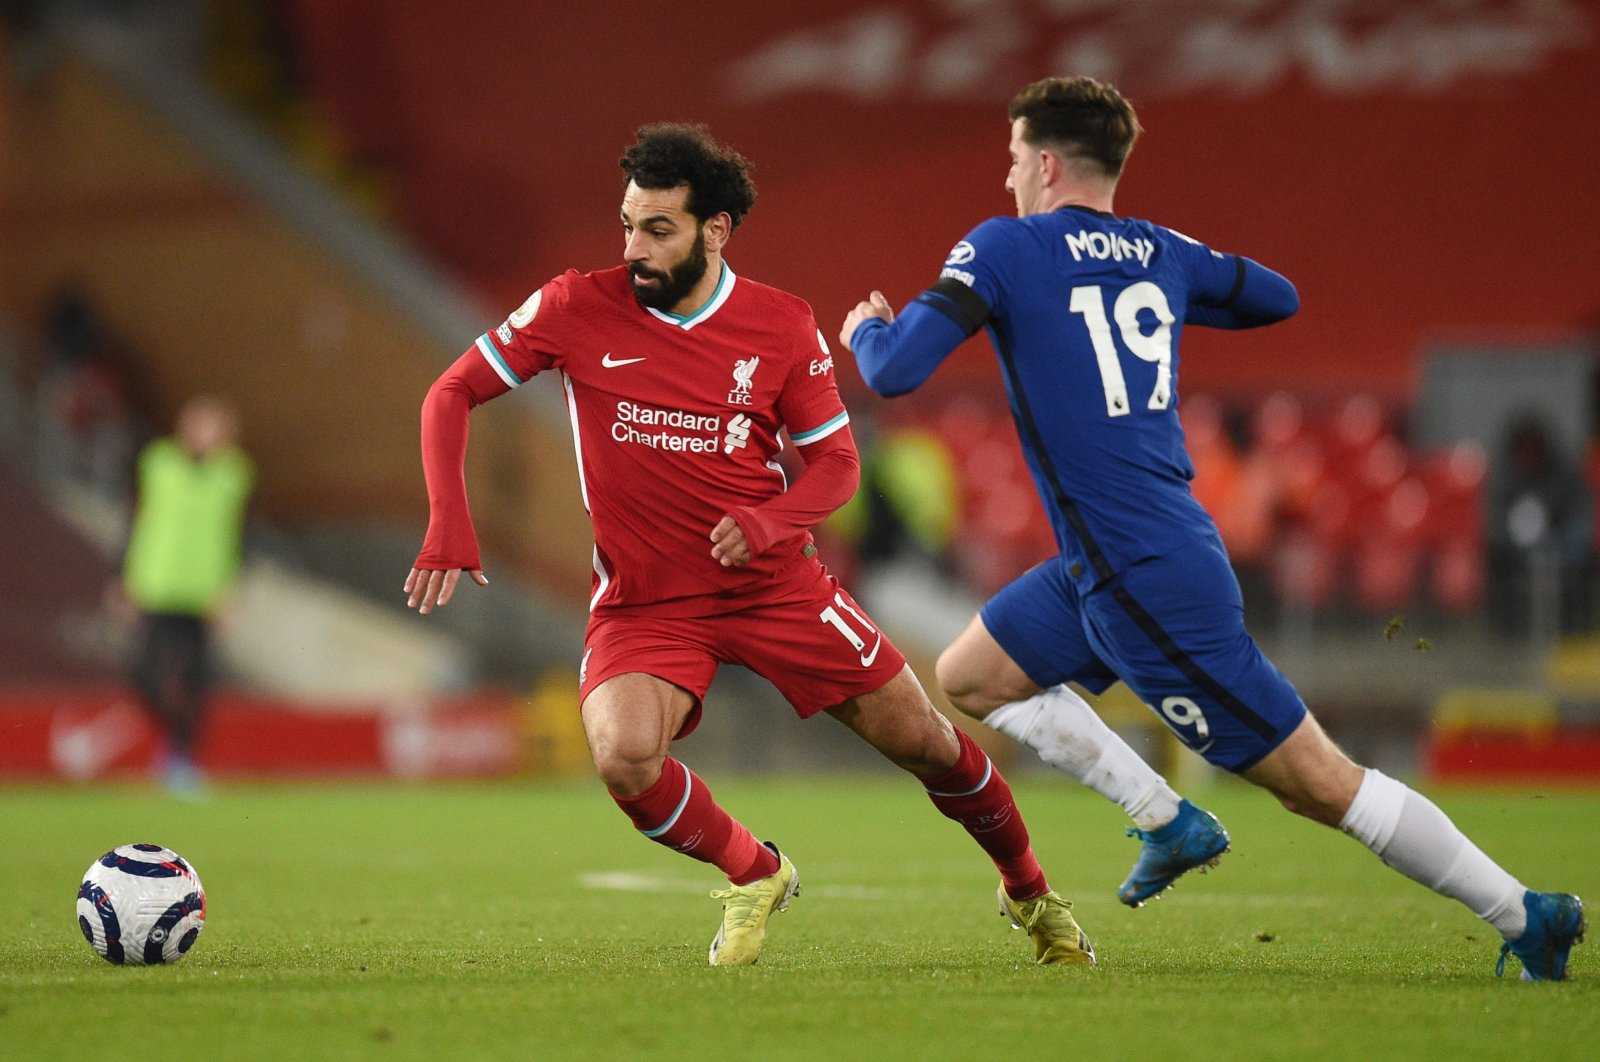 Liverpool's Mohamed Salah (L) in action with Chelsea's Mason Mount during a Premier League match at Anfield, Liverpool, Britain, March 4, 2021. (Reuters Photo)